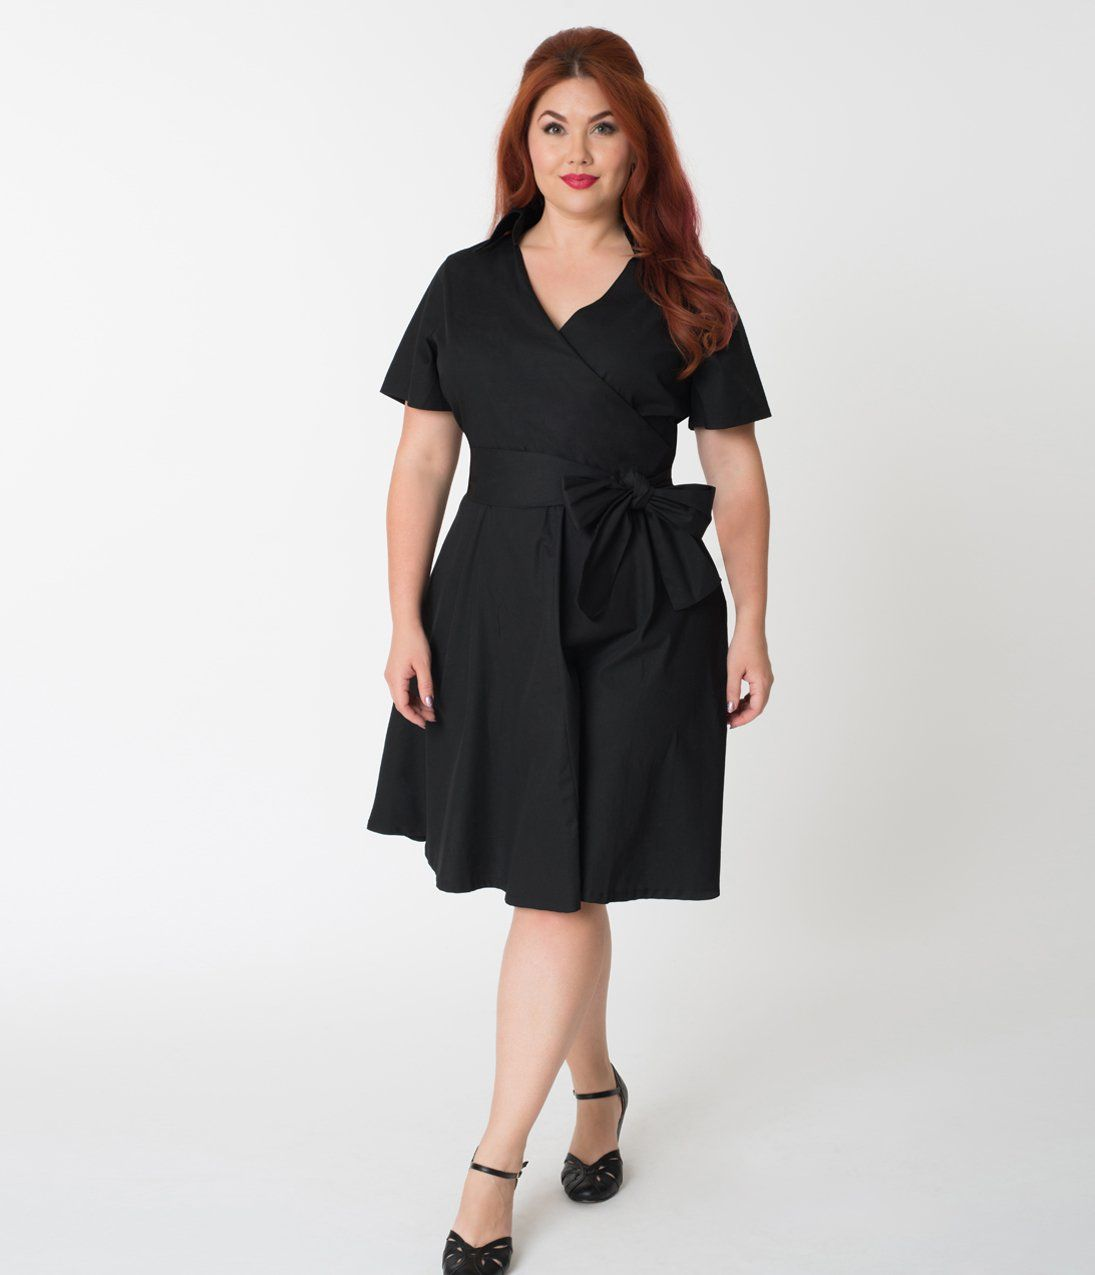 Plus size 1940s style black cotton short sleeves swing